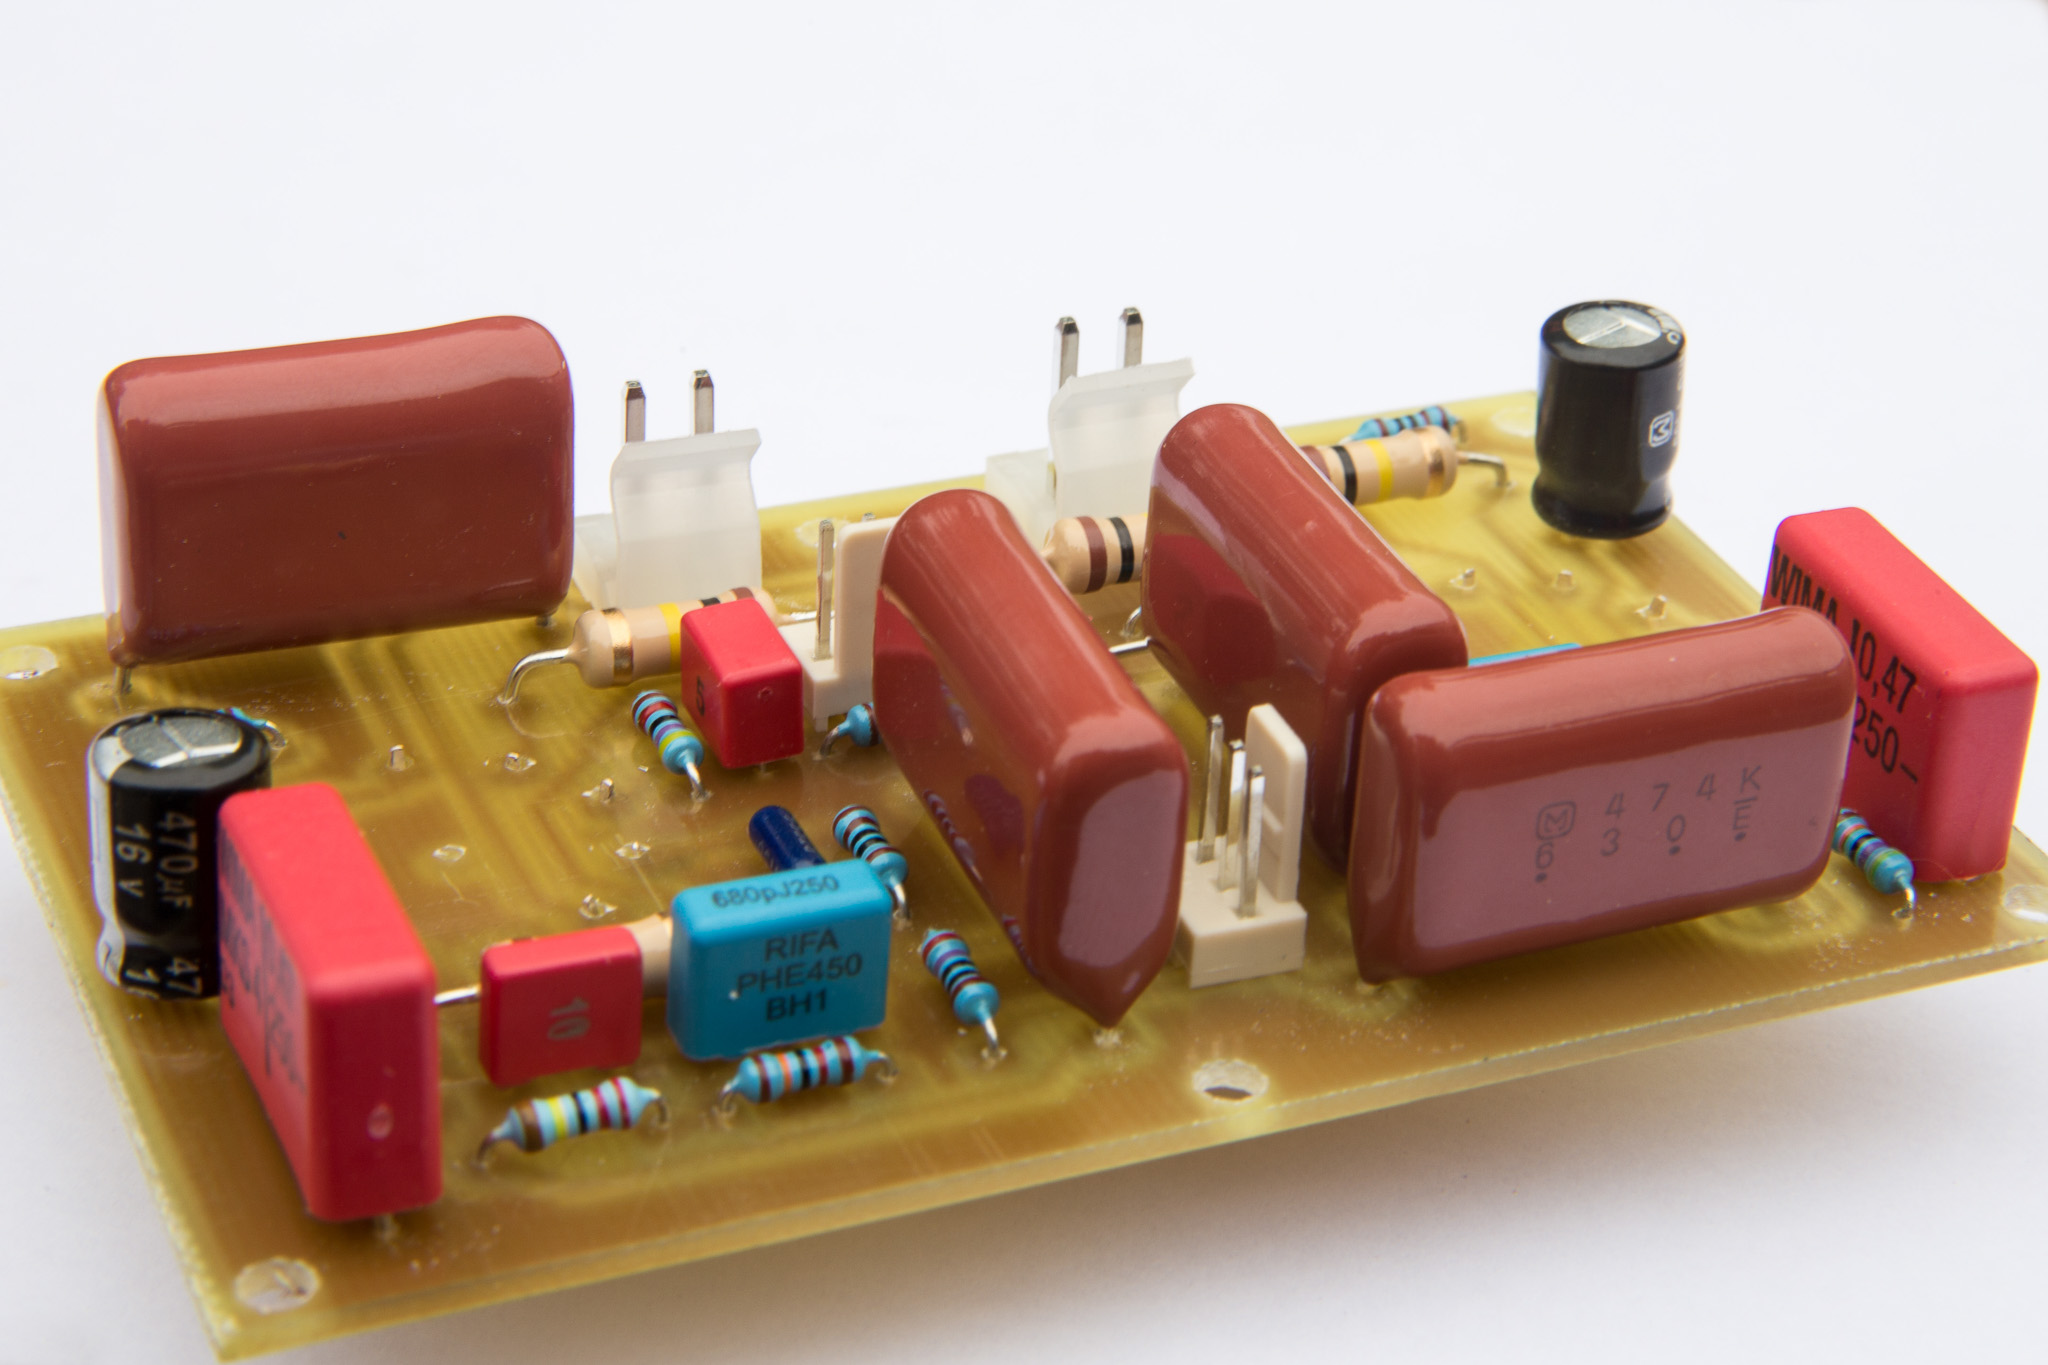 Projects Gallery For Custom Designed Hand Simpletubeamplifiercircuitusingel84ecc82jpg Also This Amplifier Was Constructed Entirely On Printed Circuit Boards To Enable Easy Re Use Of The Modules In Subsequent